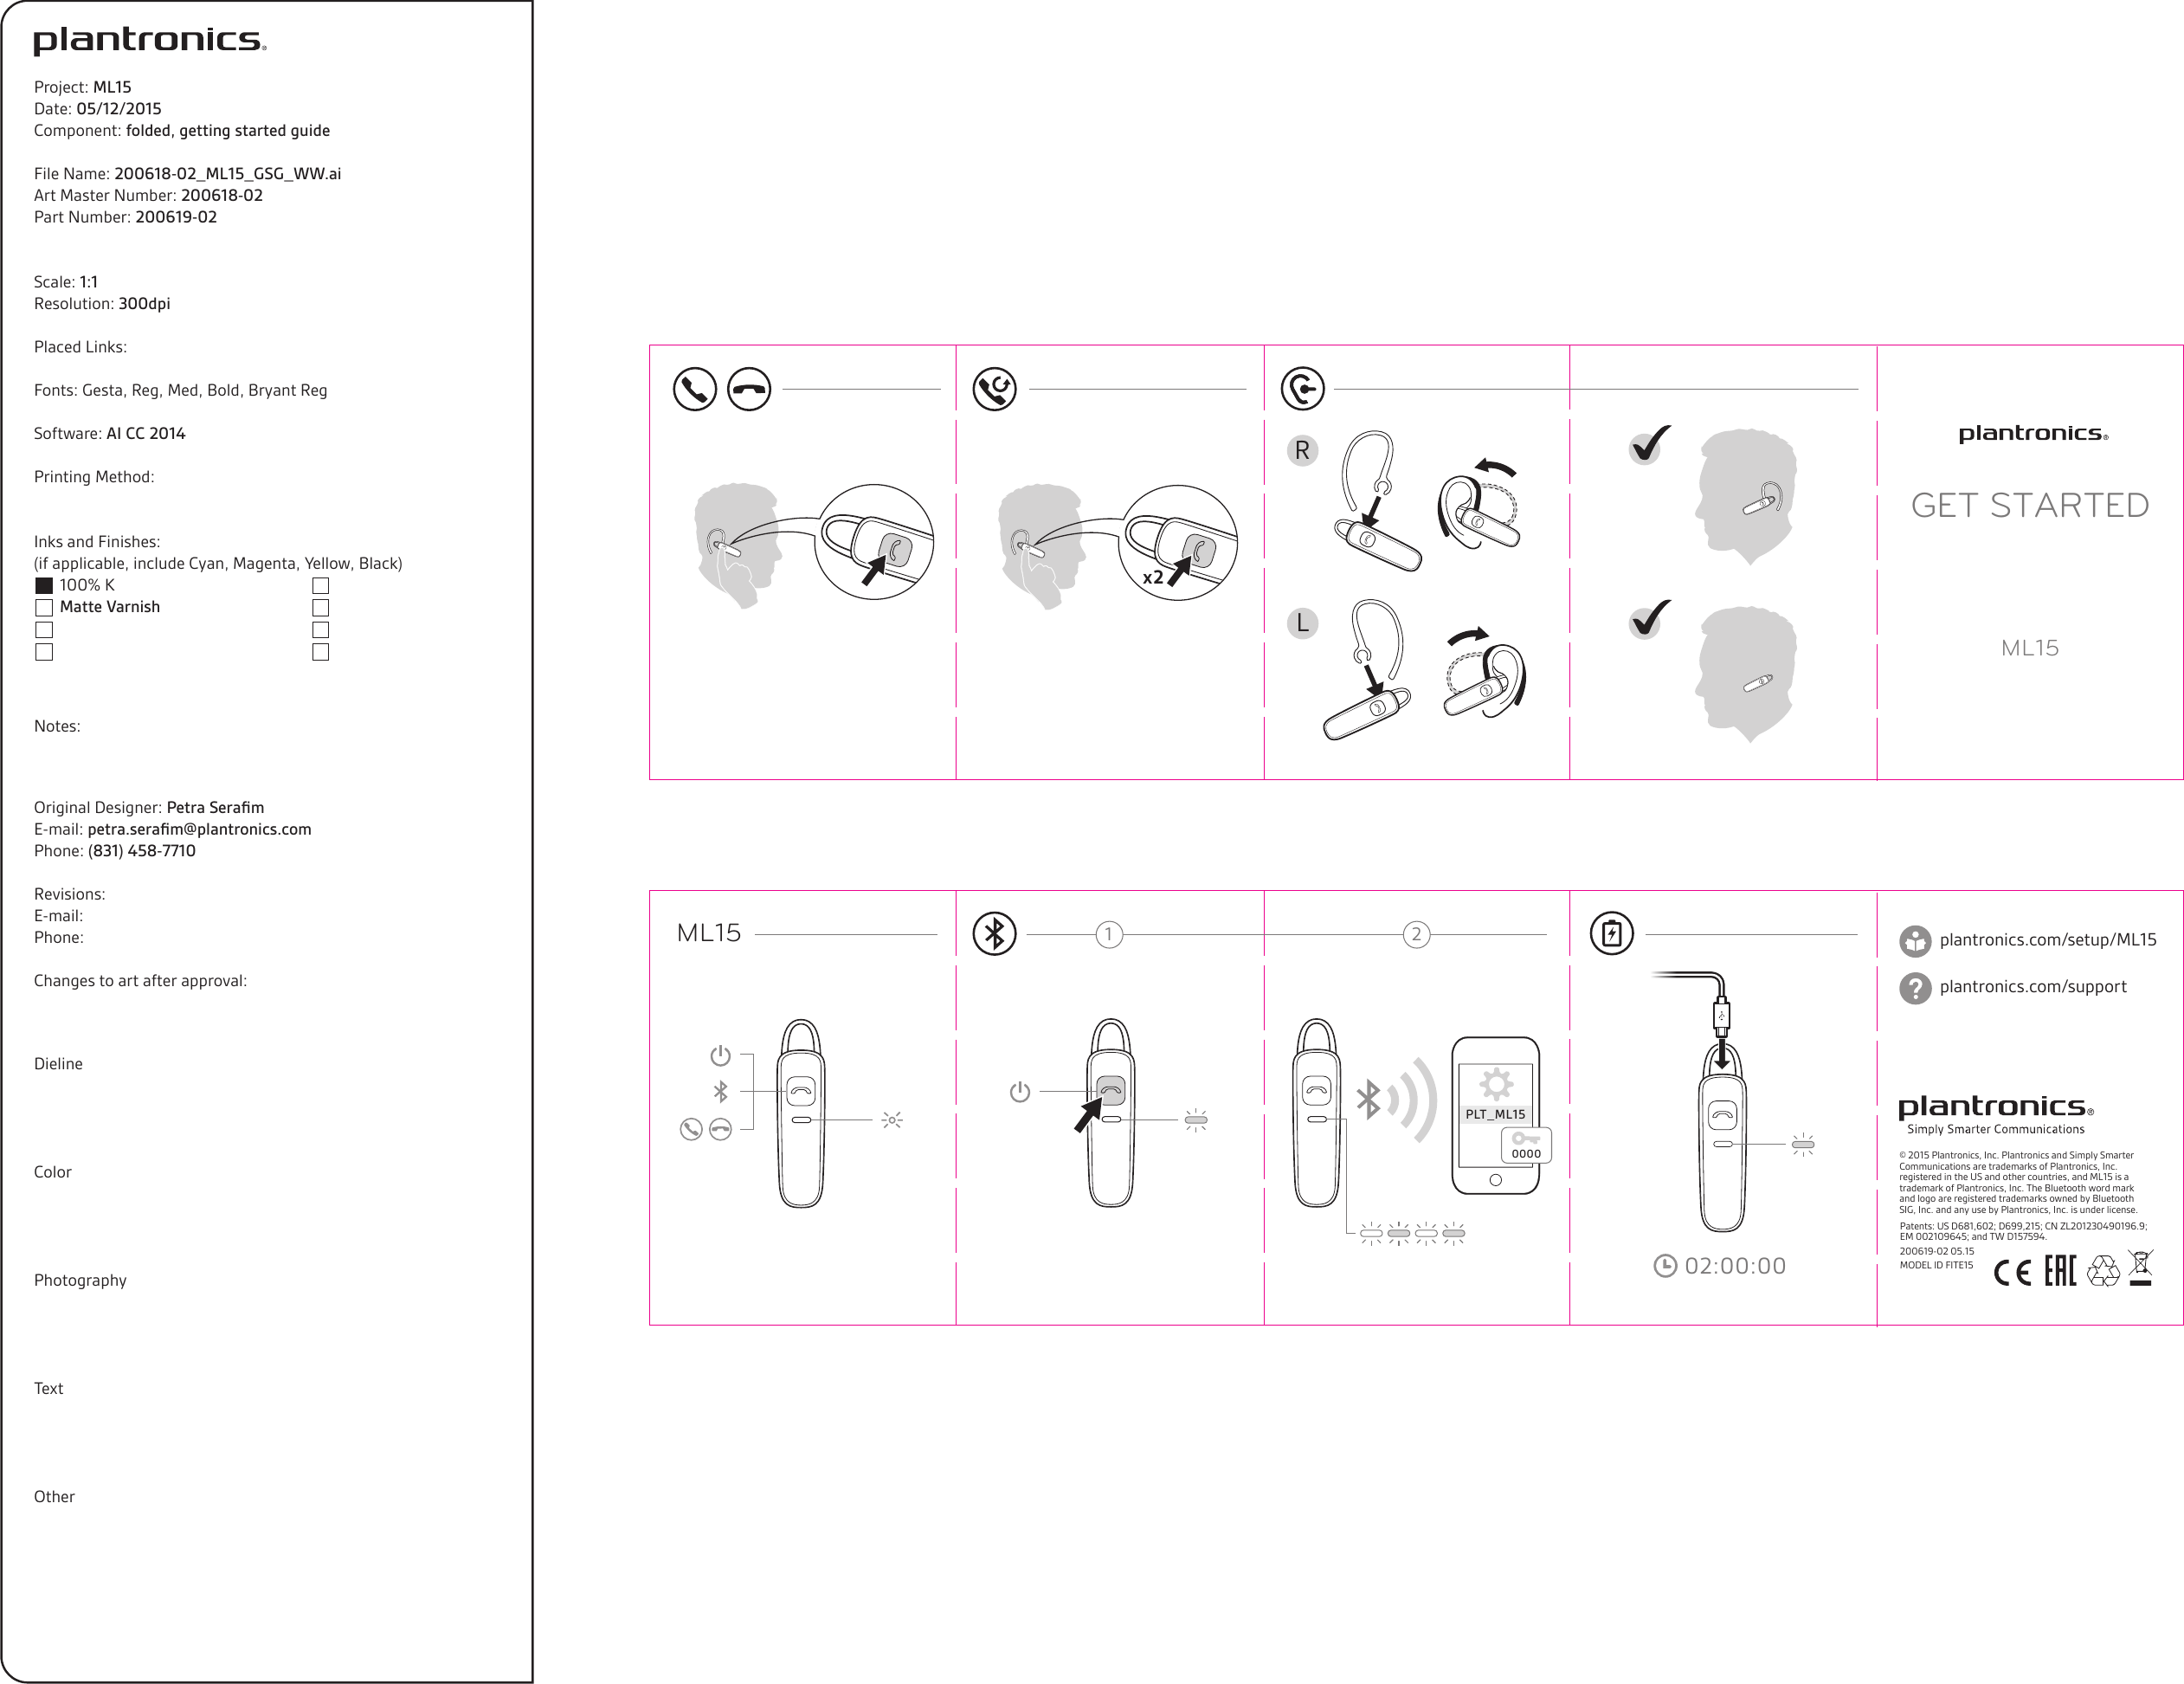 FITE15 Bluetooth headset User Manual 200618.